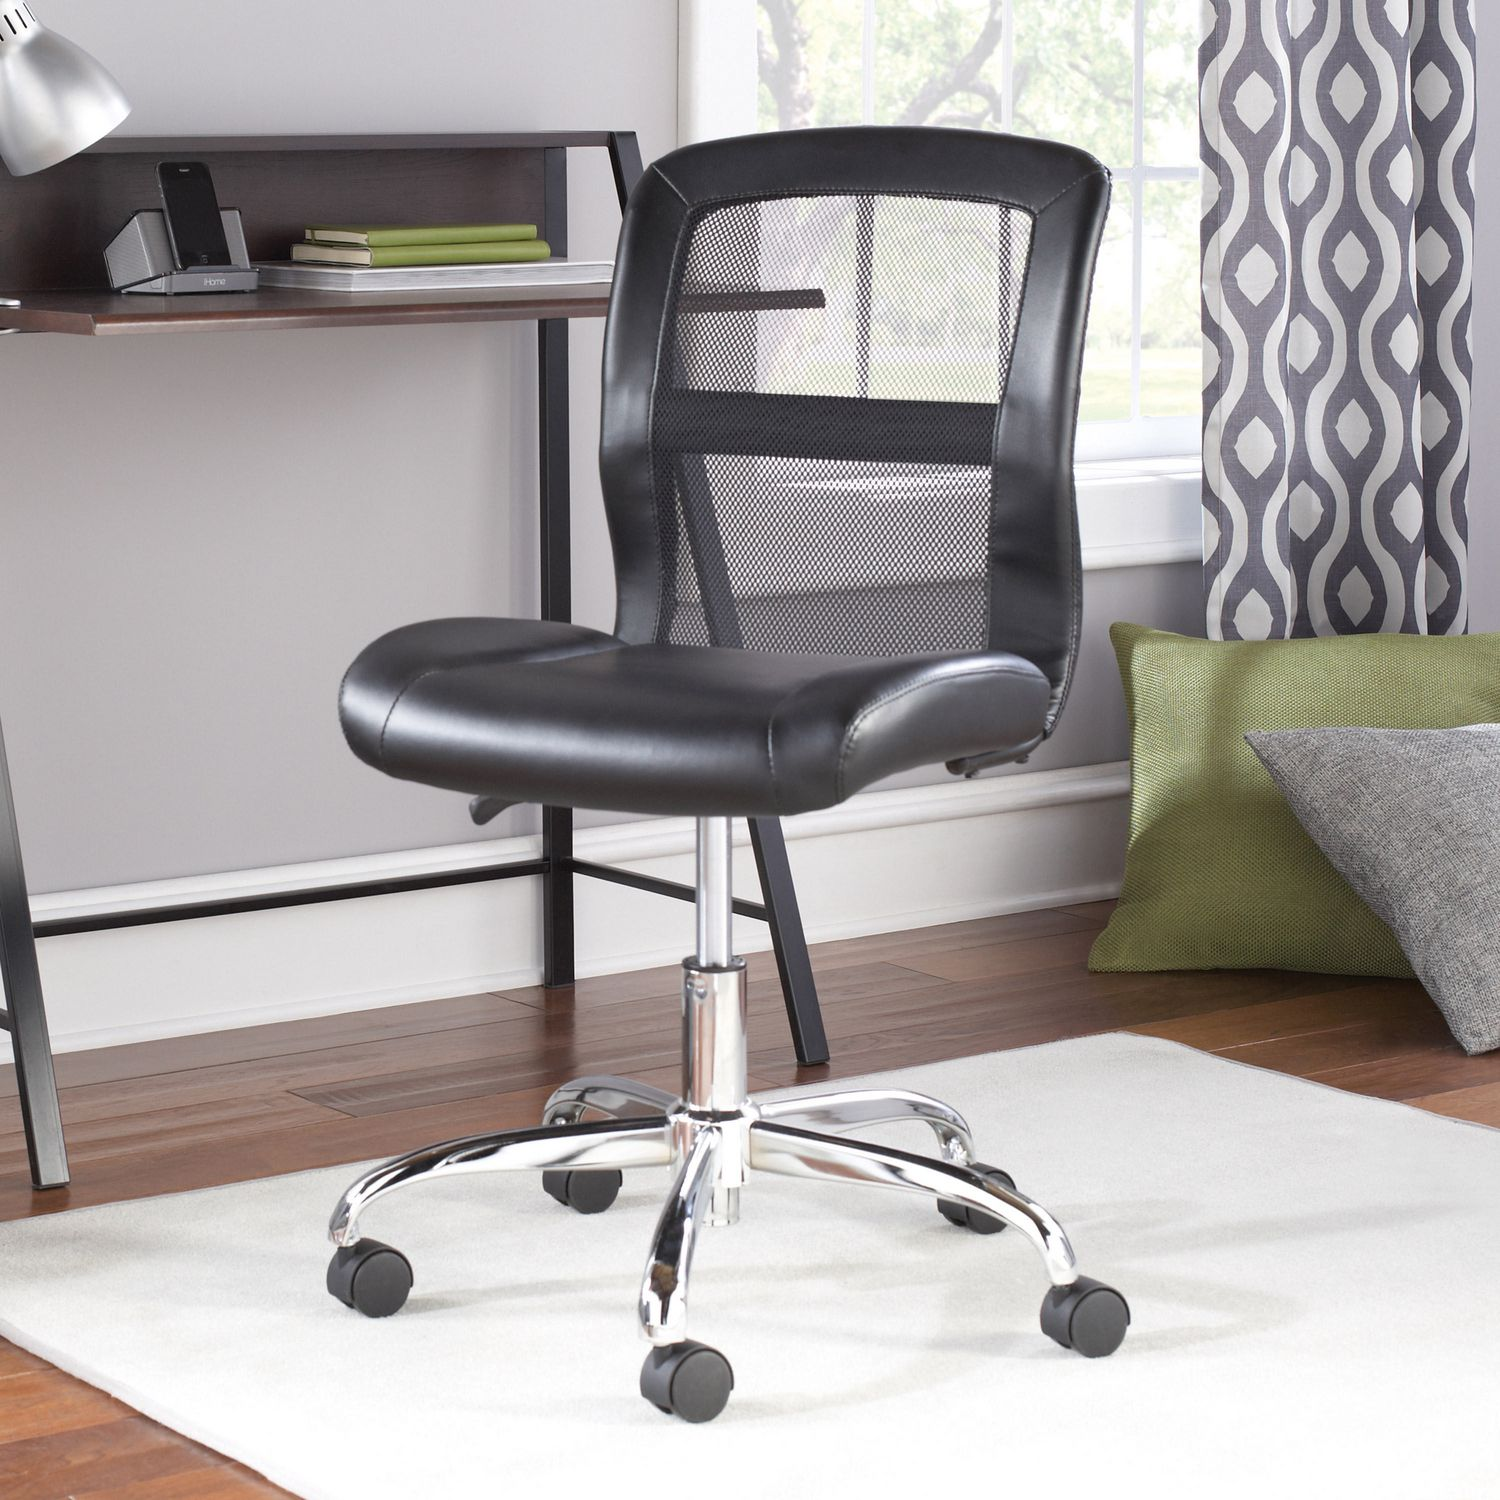 Astounding Mainstays Vinyl And Mesh Task Office Chair Ocoug Best Dining Table And Chair Ideas Images Ocougorg